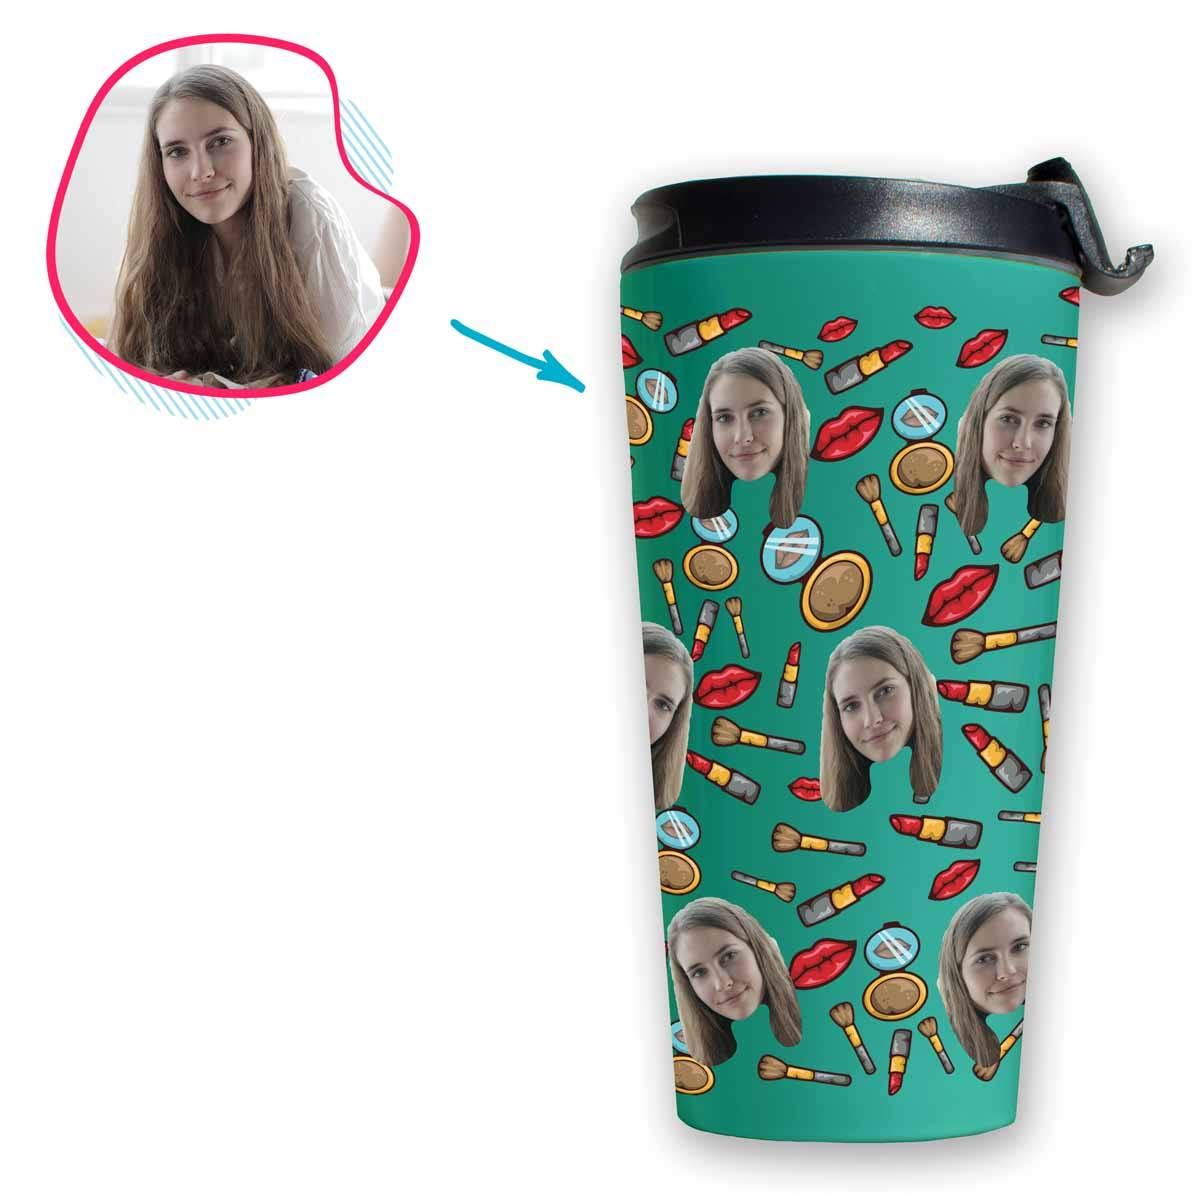 Mint Makeup personalized travel mug with photo of face printed on it